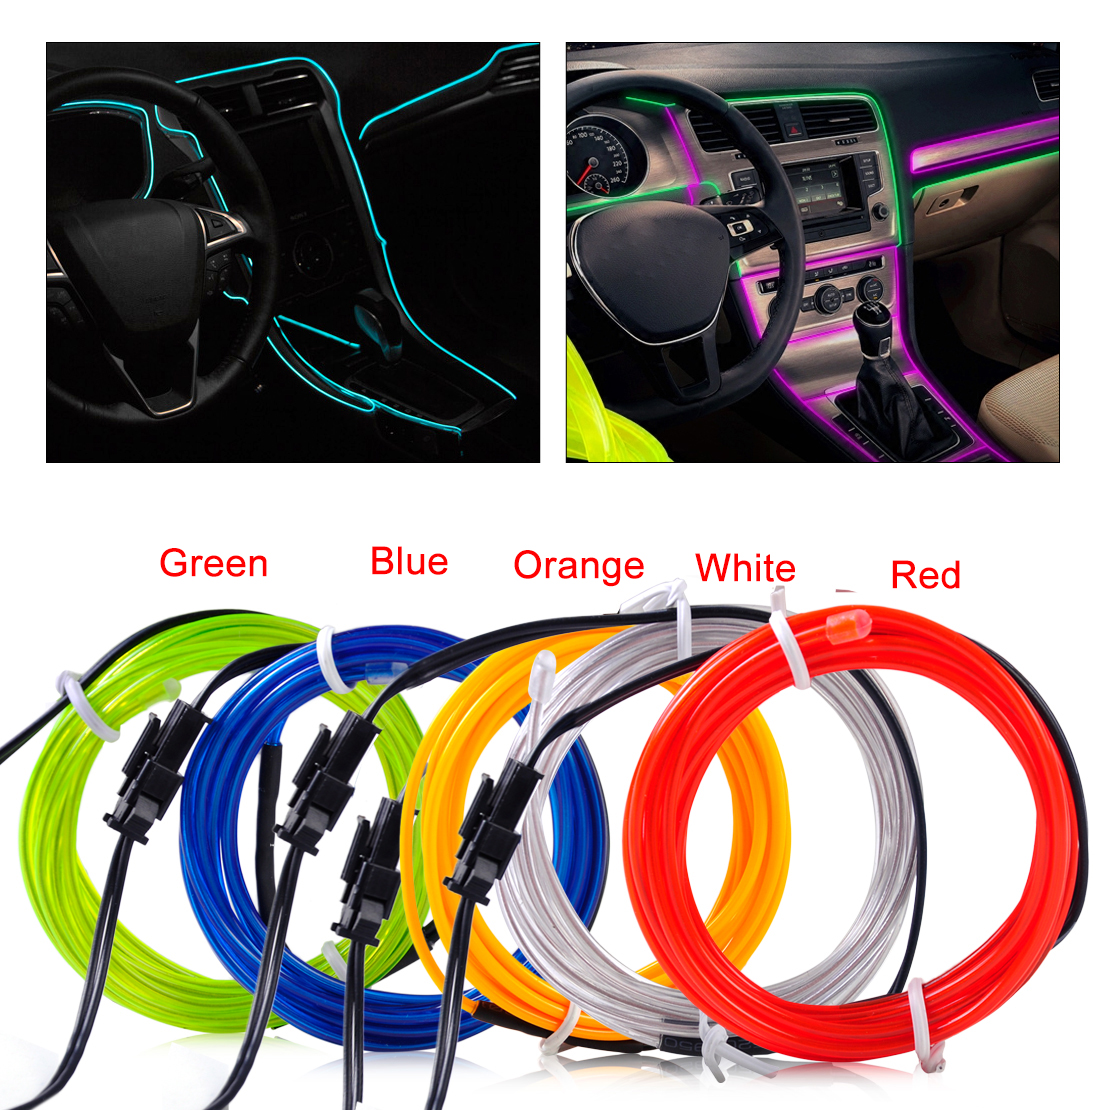 red el wire flexible 12v car interior decor fluorescent neon strip light tape ebay. Black Bedroom Furniture Sets. Home Design Ideas